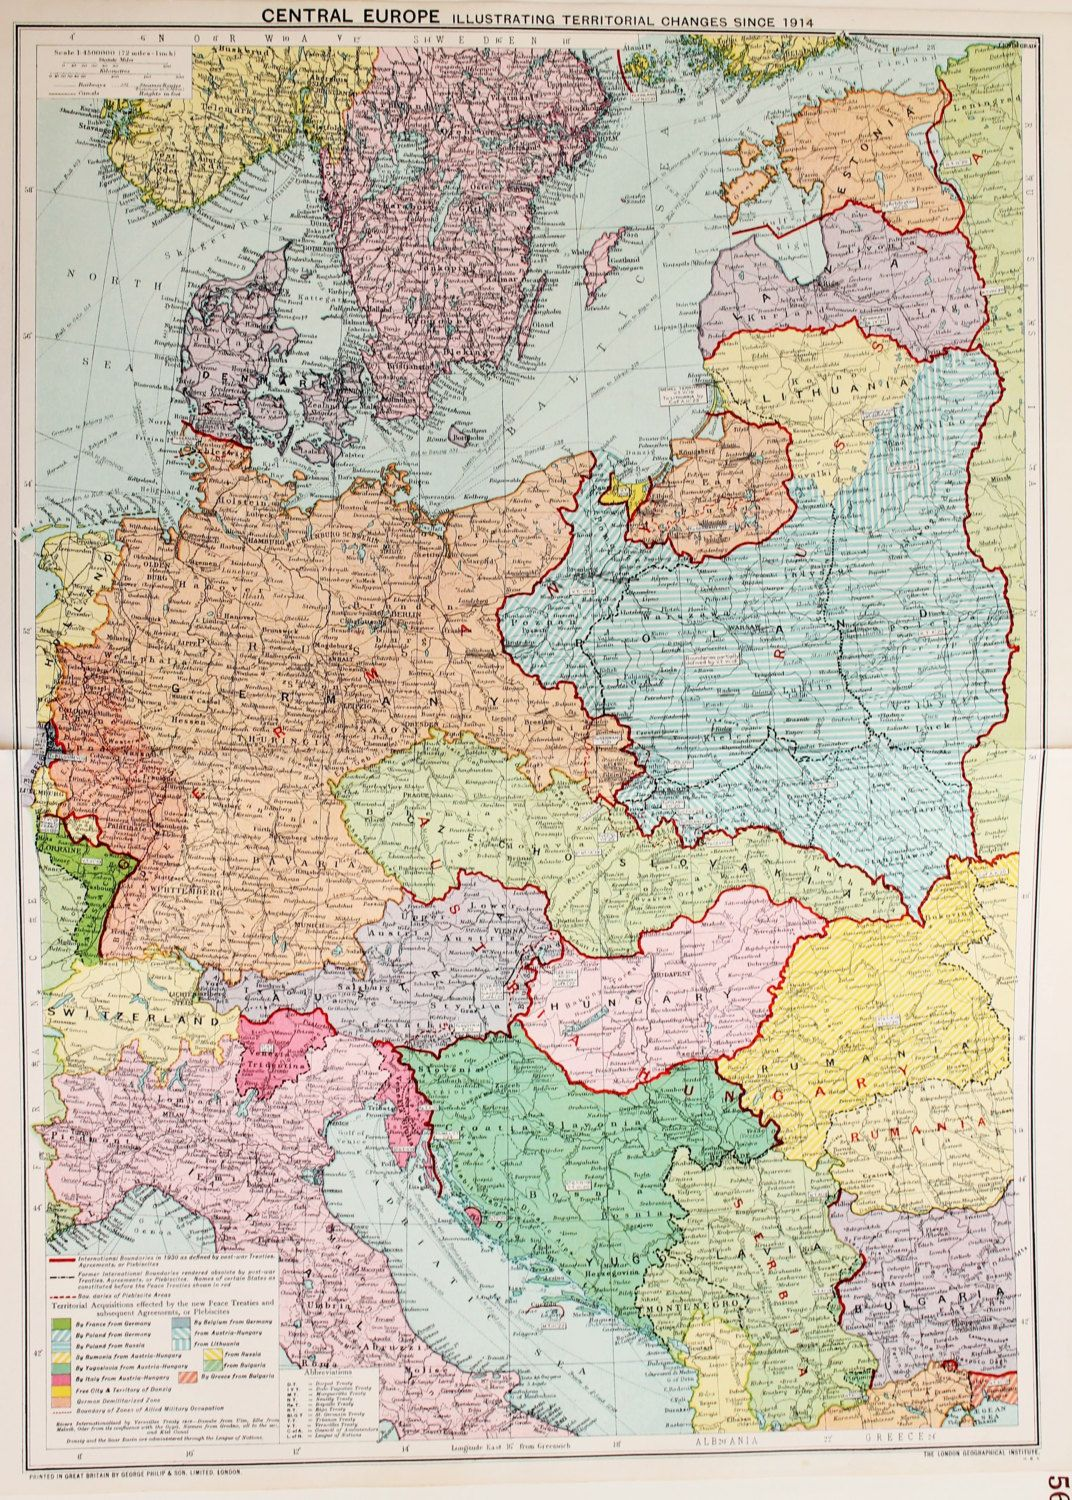 Vintage Map Central Europe Post War Territorial